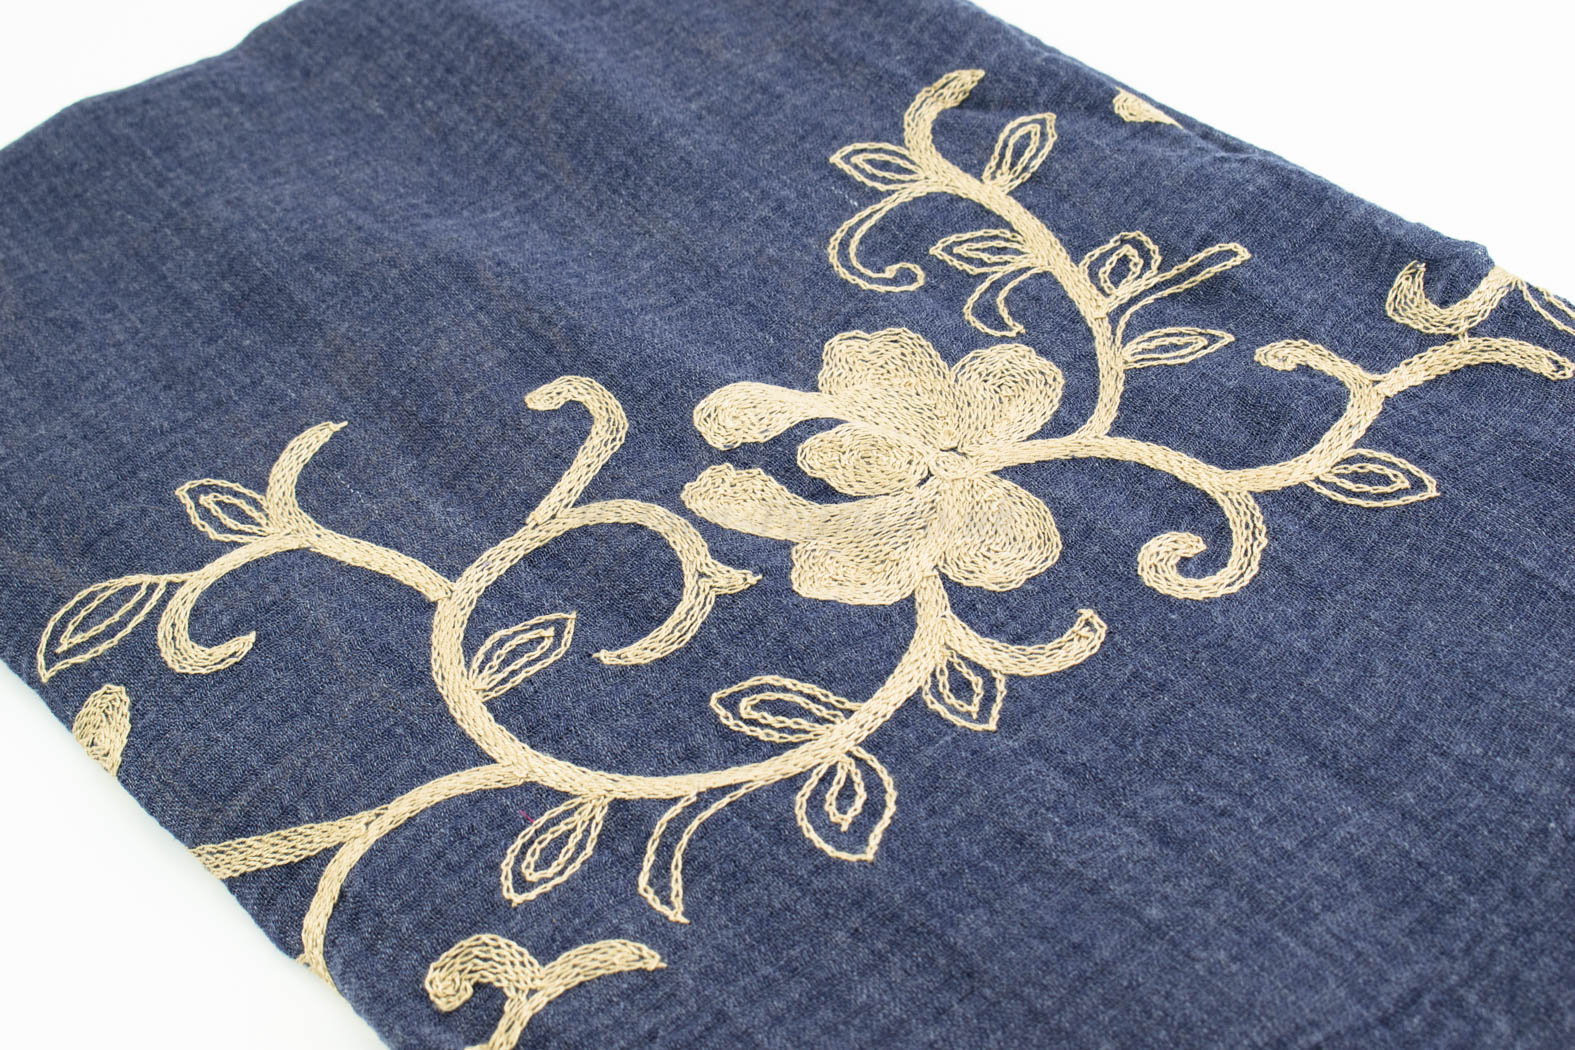 Crimp Embroidered Hijab - Denim Blue - Hidden Pearls